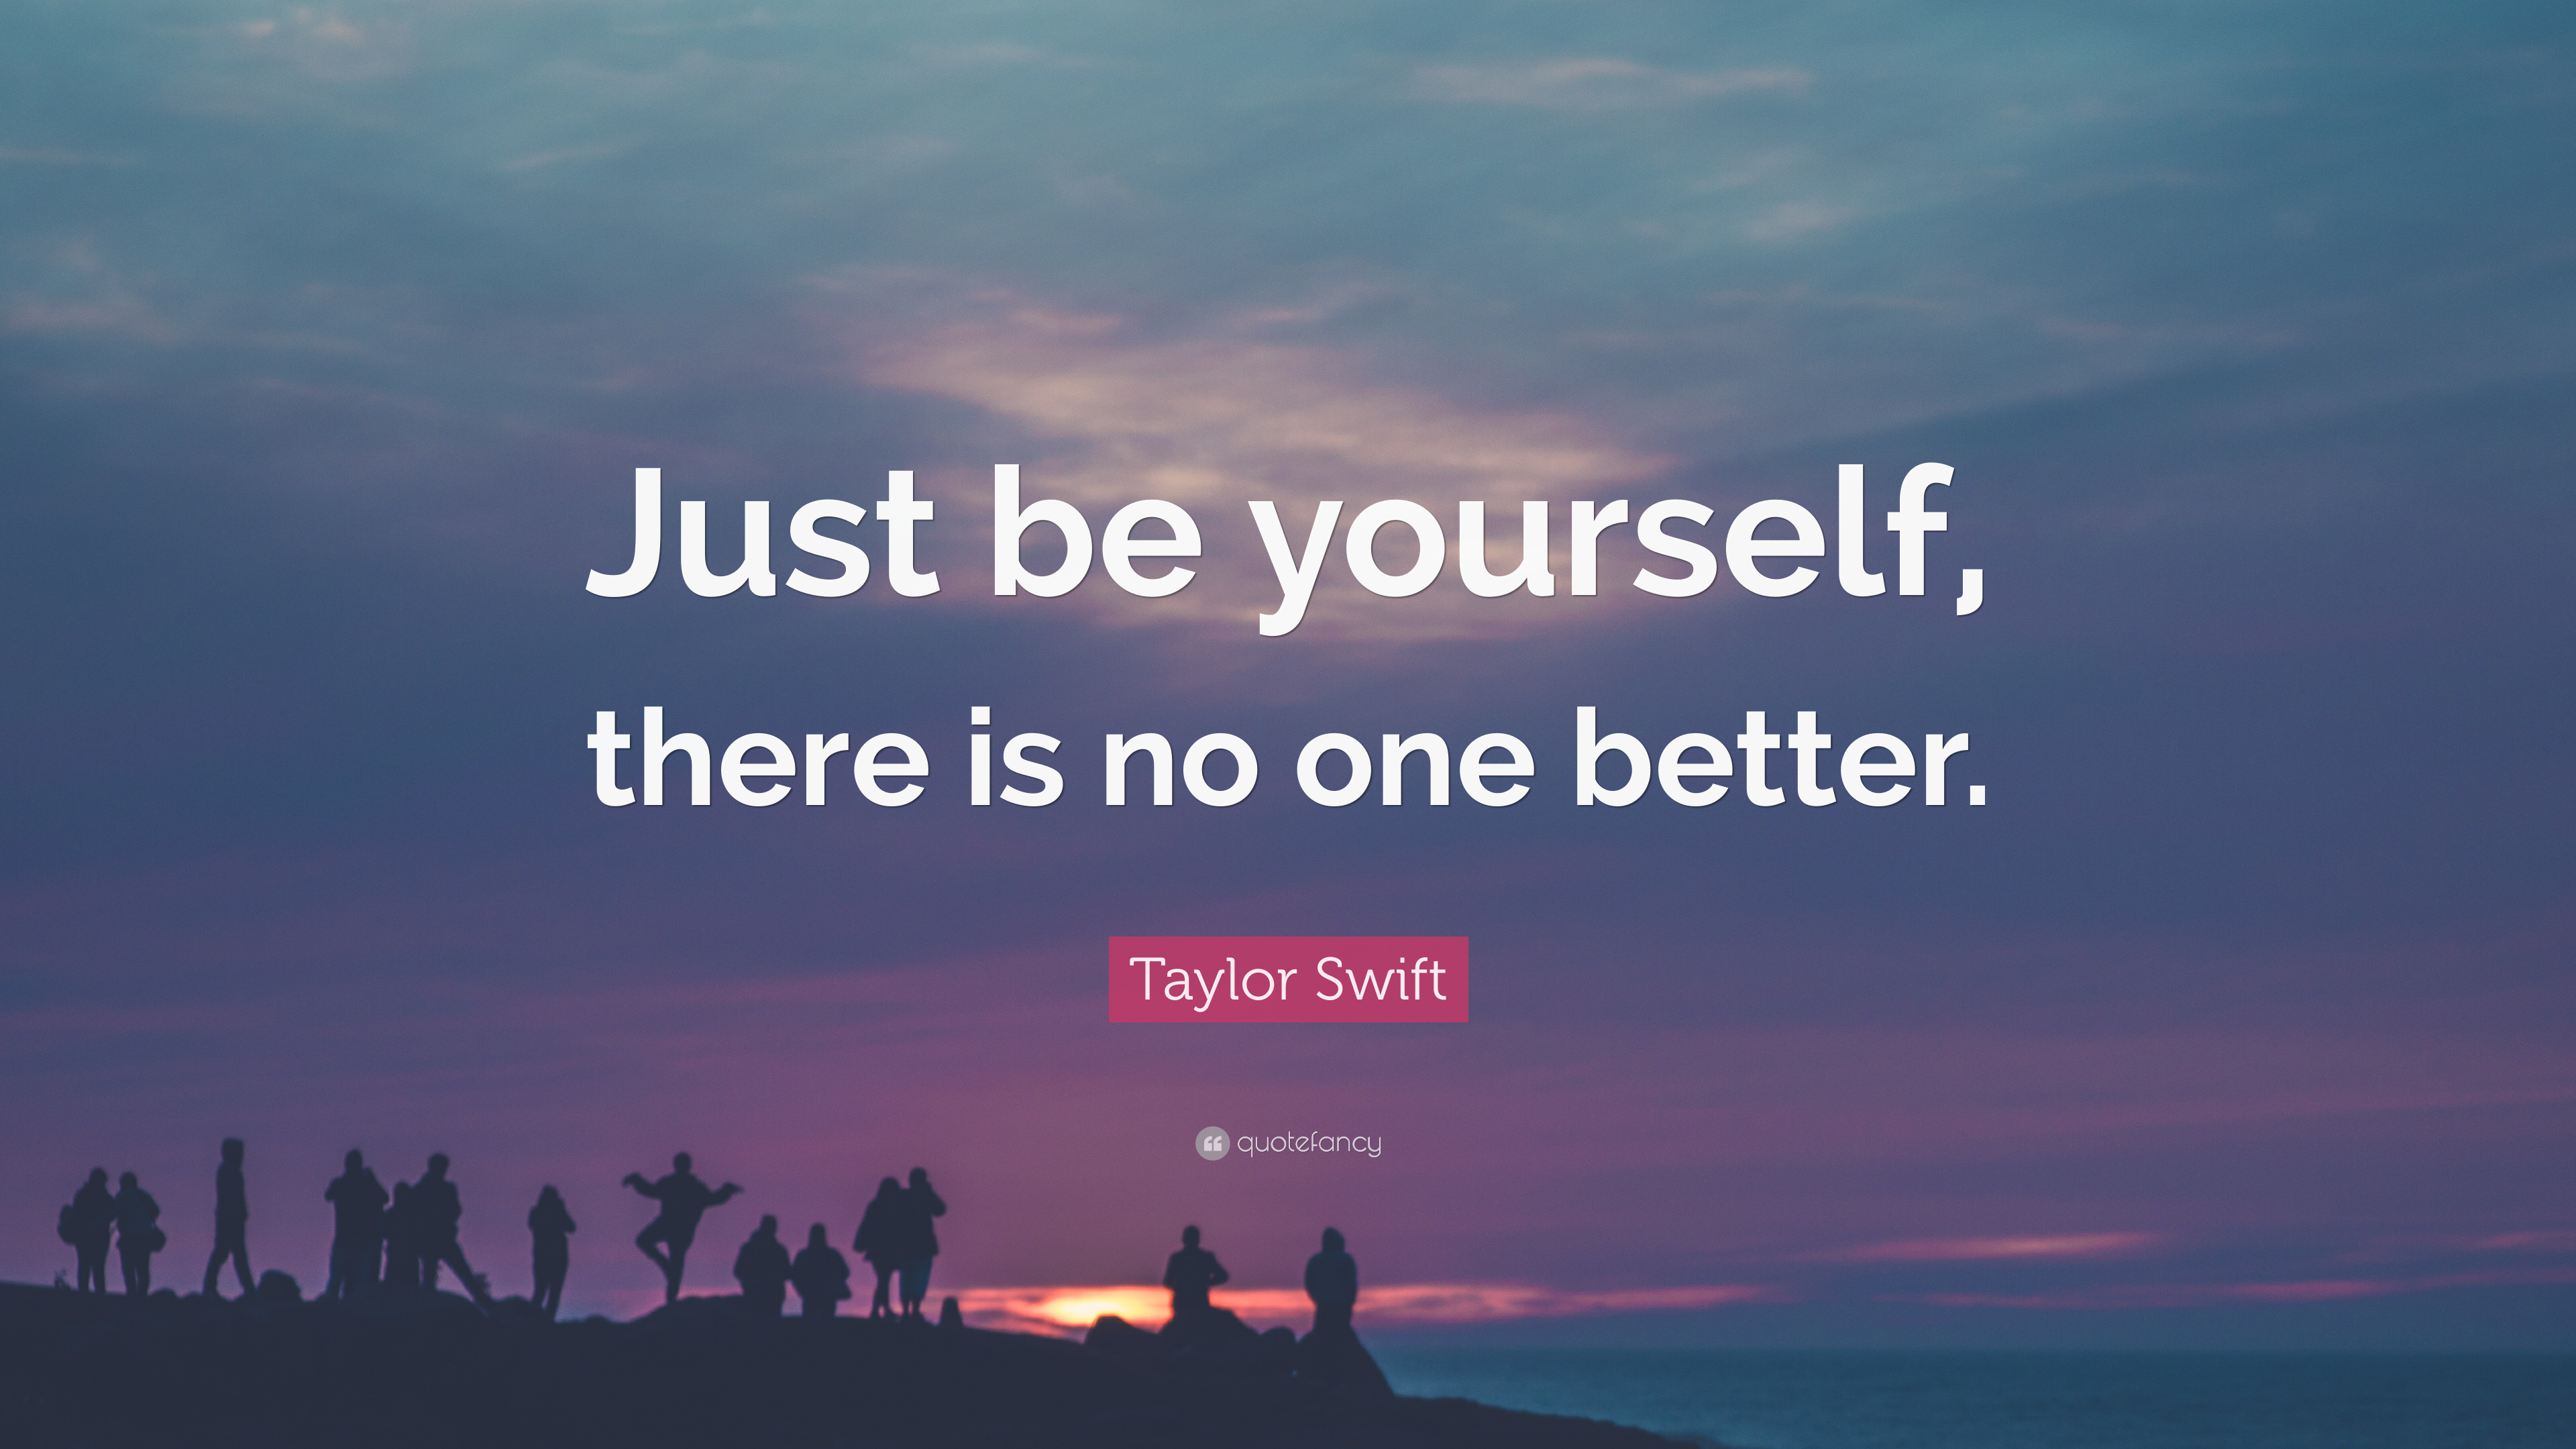 Bts Wallpaper Windows 10 Quote Taylor Swift Quote Just Be Yourself There Is No One